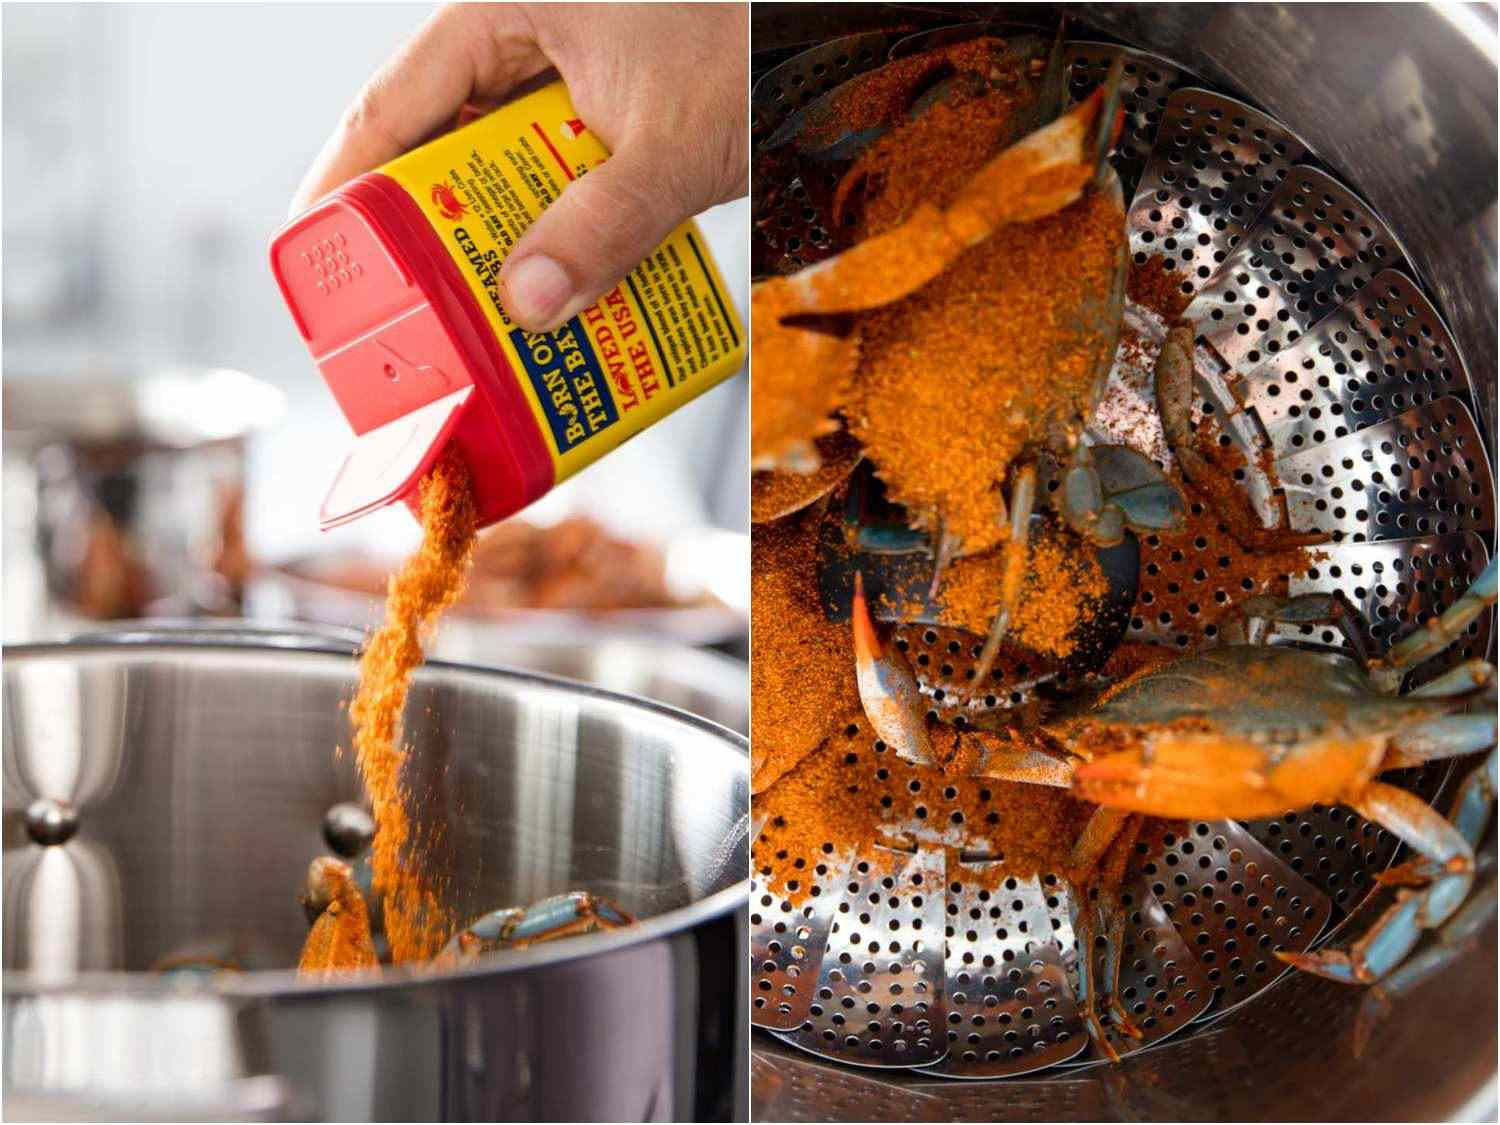 Pouring Old Bay seasoning into the crab pot; crabs in the steamer, coated in Old Bay